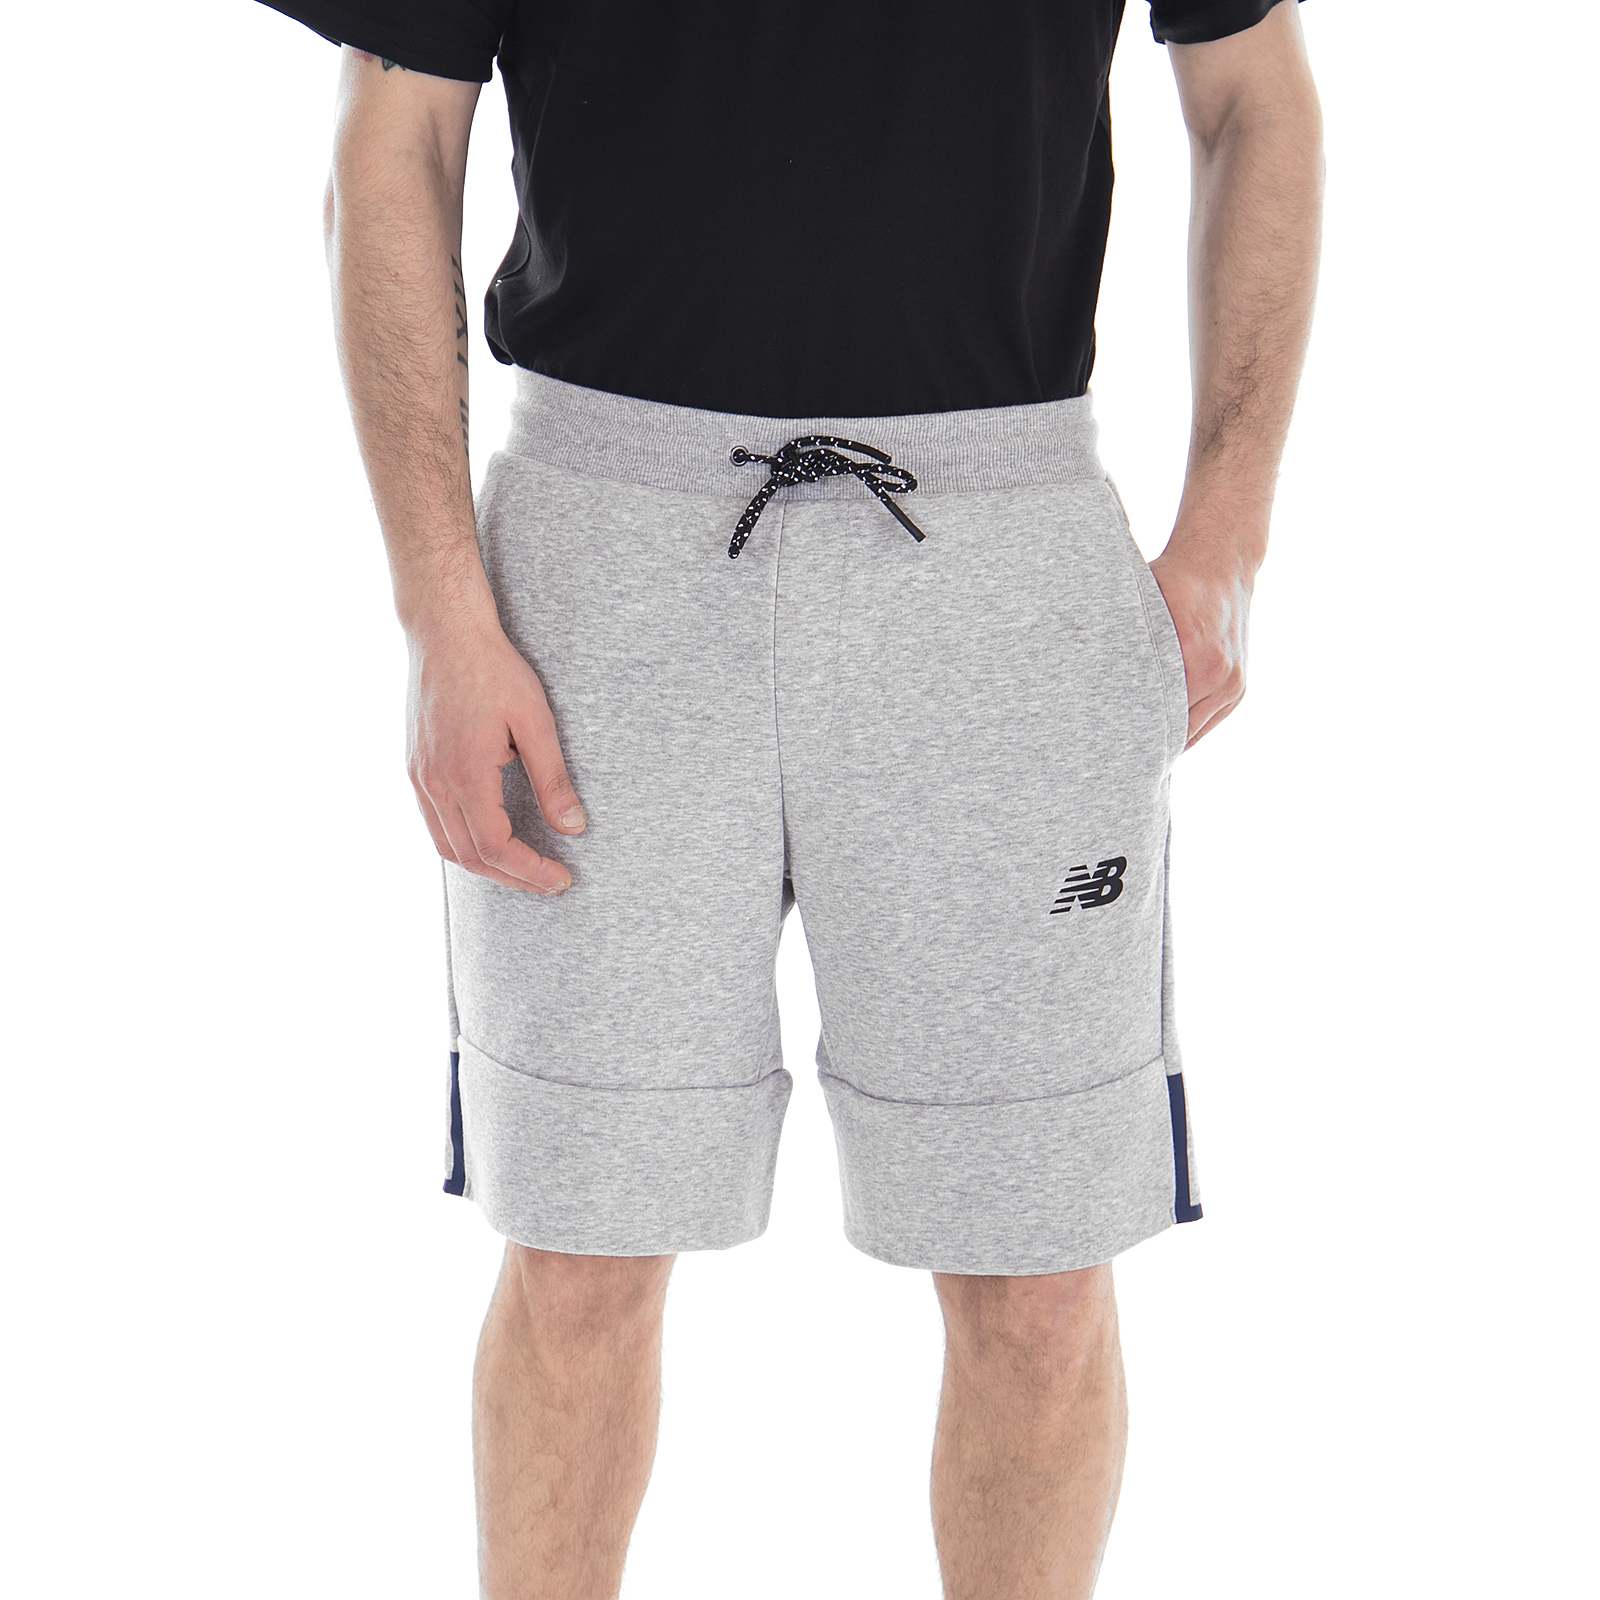 wholesale dealer 4b527 861f8 Details about New balance Shorts Ms81529 Nb Athletics short Athletic Gre -  short Grey